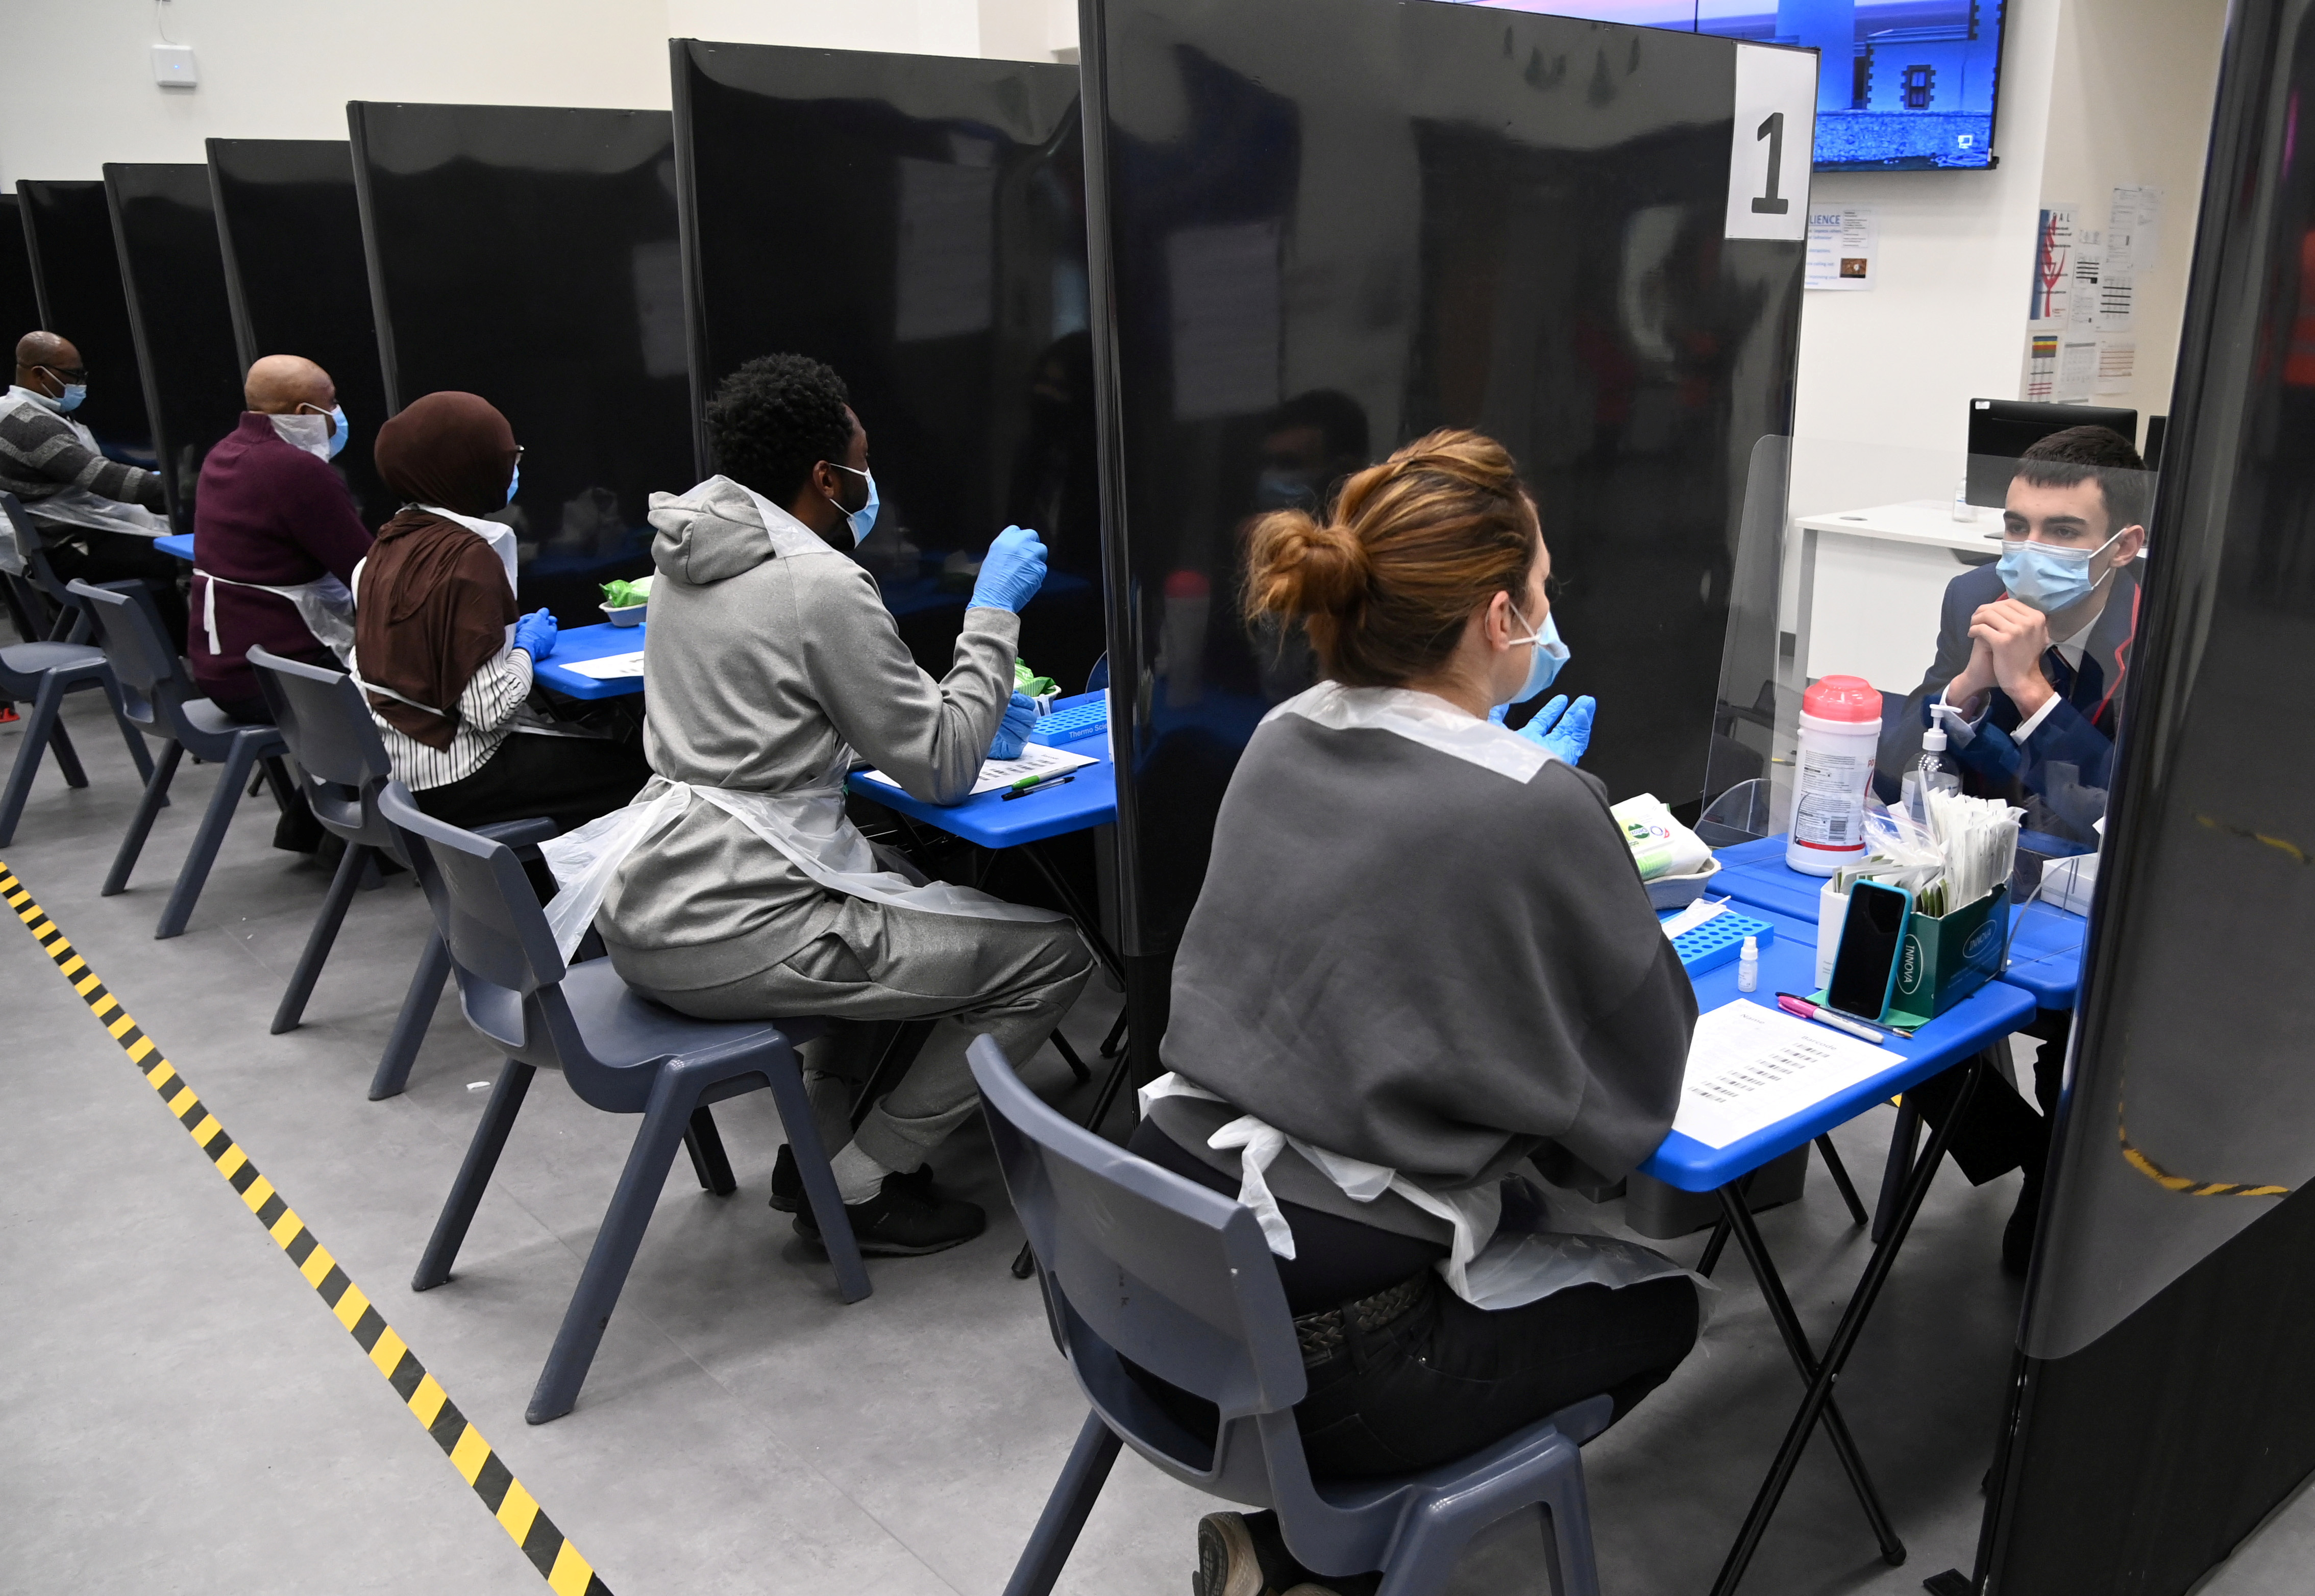 Health workers and volunteers assist as students take coronavirus disease (COVID-19) tests at Harris Academy Beckenham, ahead of full school reopening in England as part of lockdown restrictions being eased, in Beckenham, south east London, Britain, March 5, 2021. REUTERS/Toby Melville/